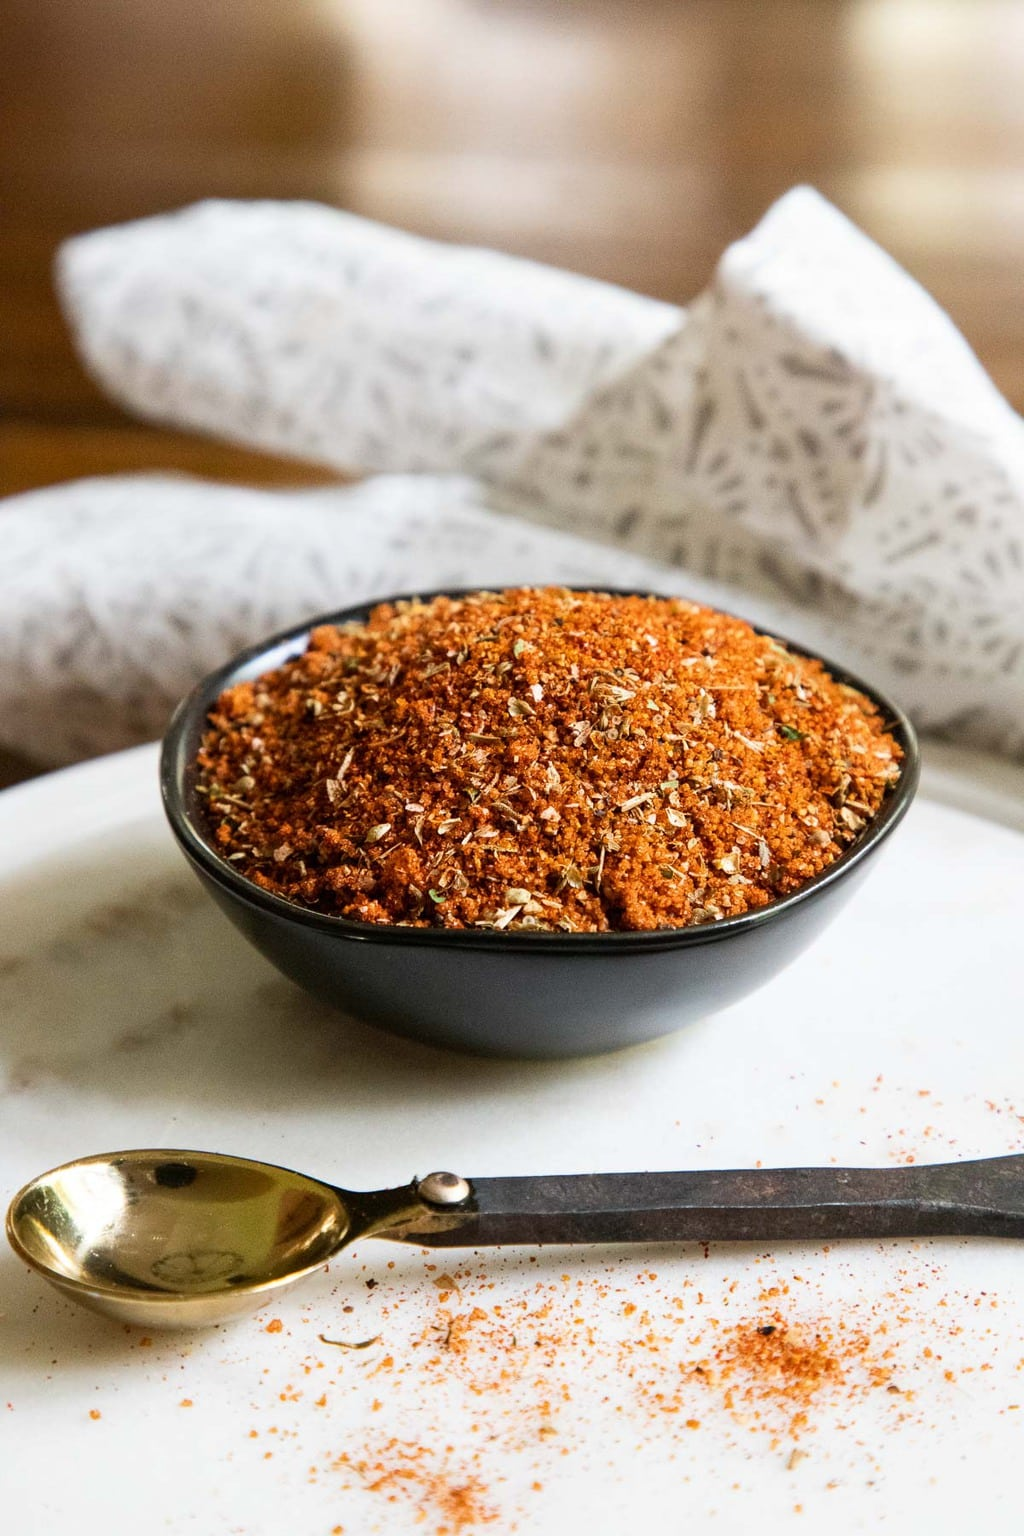 Vertical photo of a small black bowl filled with Peruvian Spice Rub for making Peruvian Chicken.